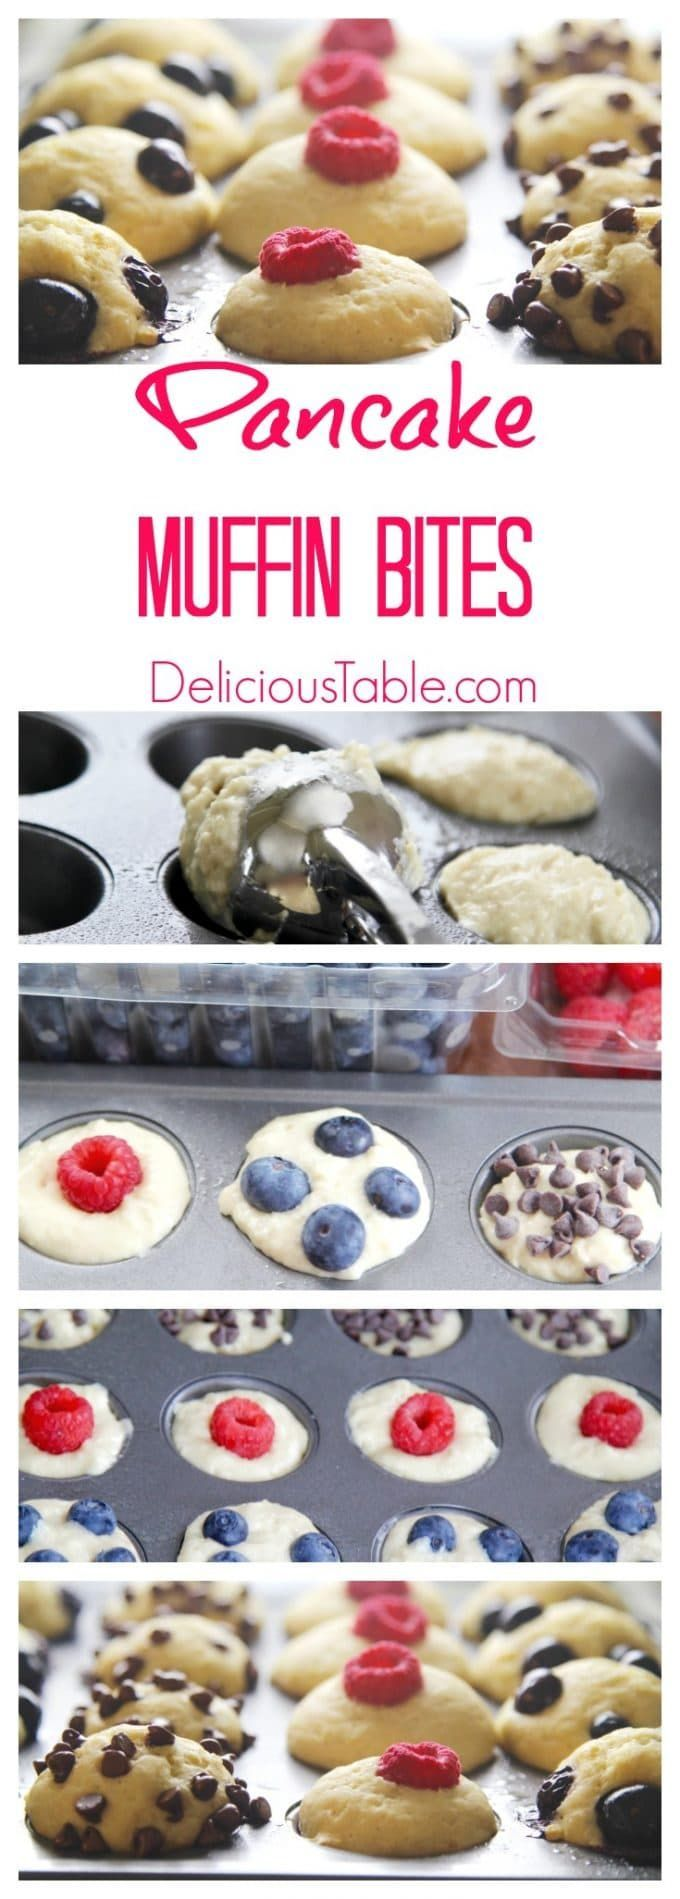 You'll love these Pancake Muffin Bites! Is it a pancake recipe? Is it a muffin recipe? It's BOTH! This is a great breakfast recipe for kids and kids at heart. Decorate your cute Pancake Muffin Bites with blueberries, raspberries, and chocolate chips. #pancakerecipes #muffinrecipes #breakfastrecipes